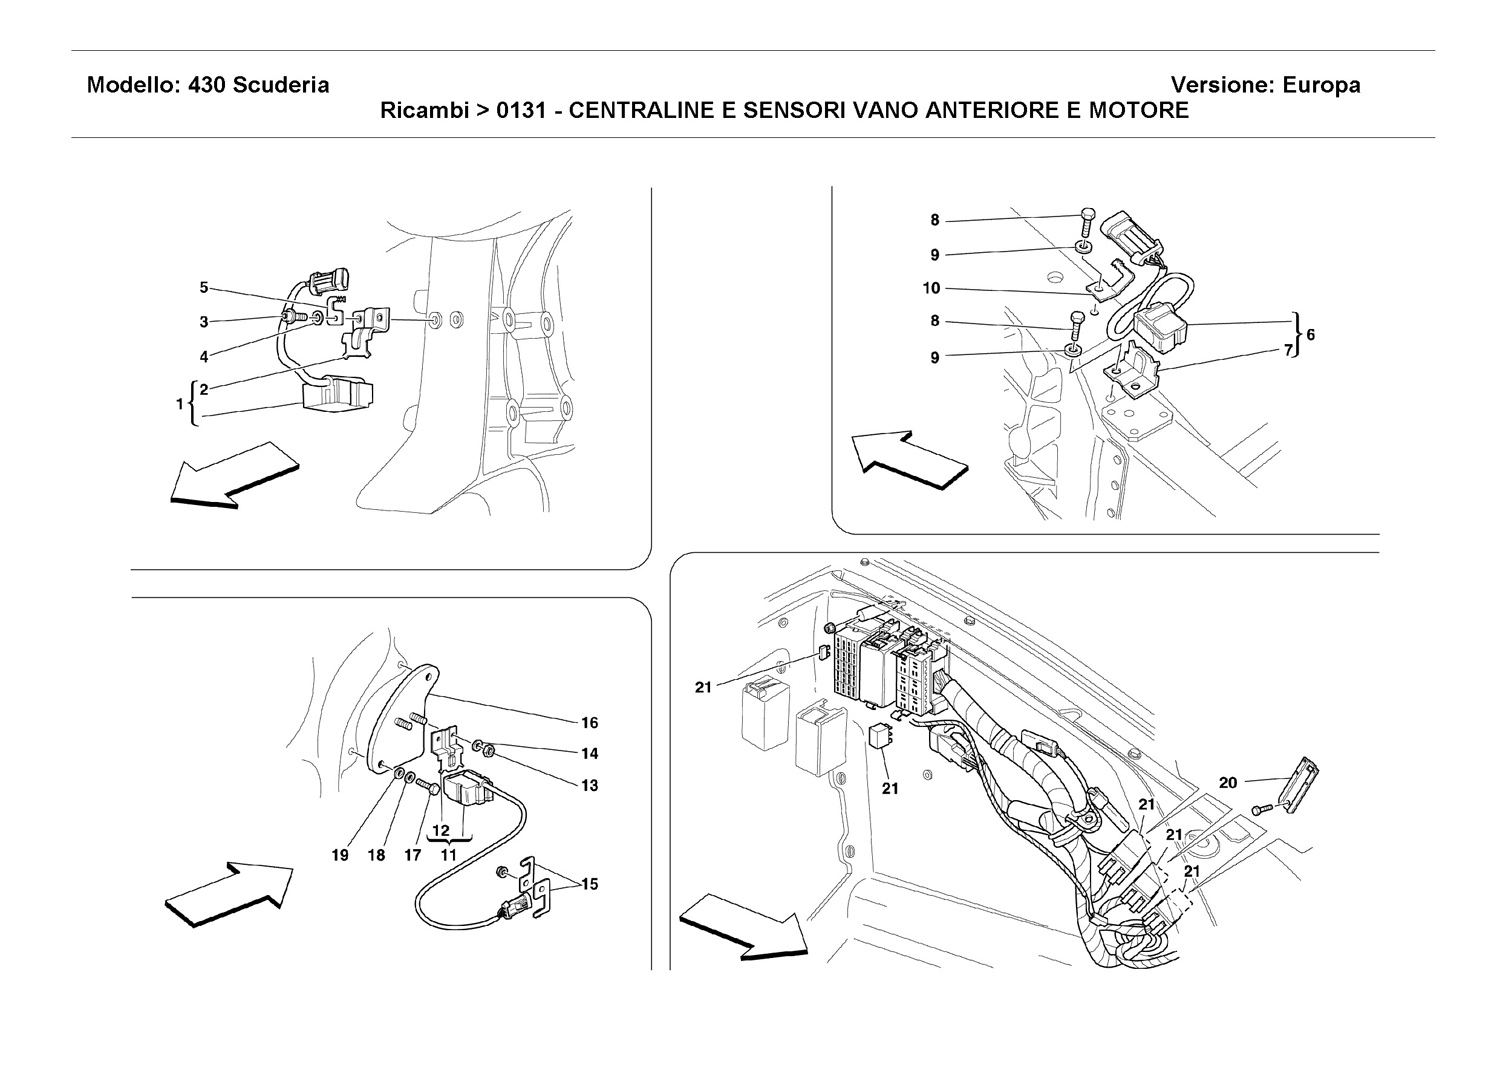 FRONT AND MOTOR COMPARTMENTS ELECTRICAL BOARDS AND